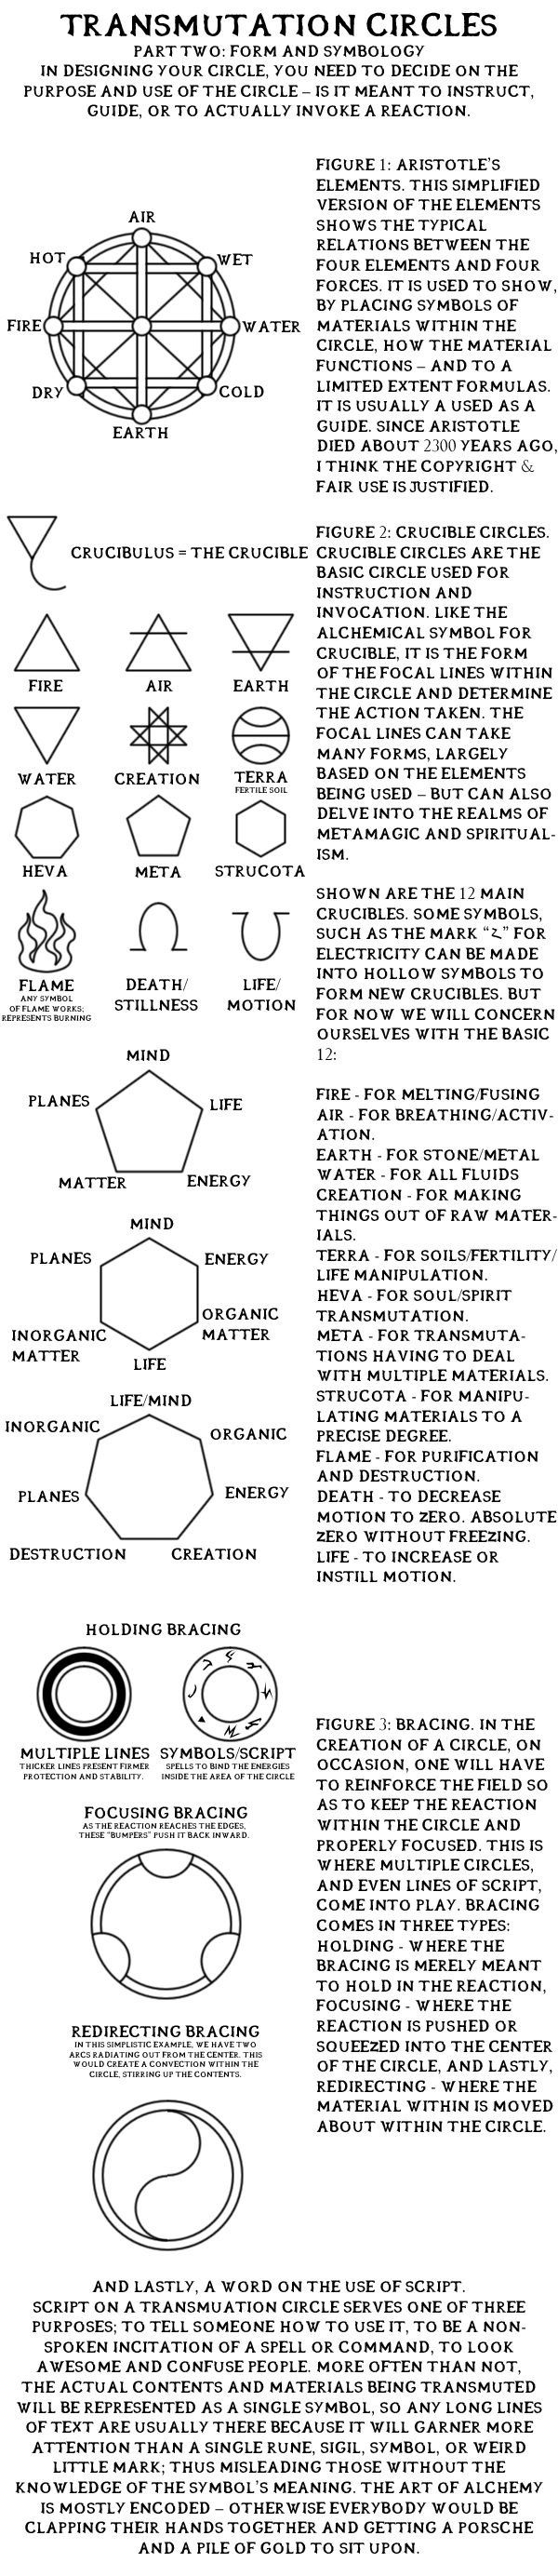 7 best symbols graphemes images on pinterest tattoo ideas fullmetal alchemist discussion board transmutation circles in fma how do they work explaining transmutation circles found in fma ccuart Image collections